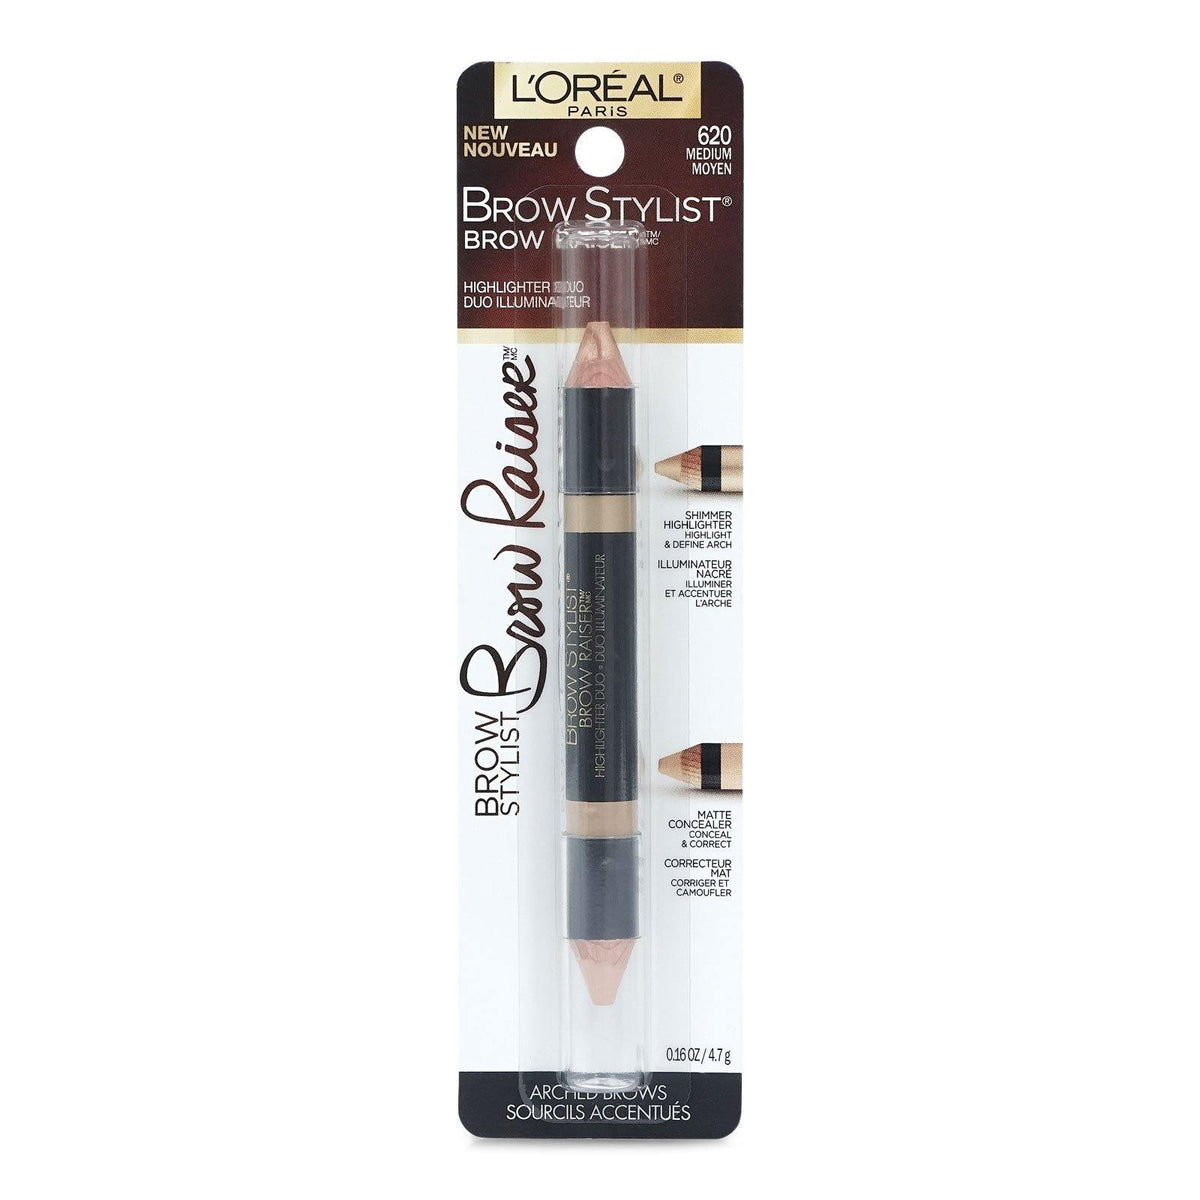 LOREAL BROW STYLIST RAISER HIGHLIGHTER DUO - MEDIUM # 620 (24/cs)